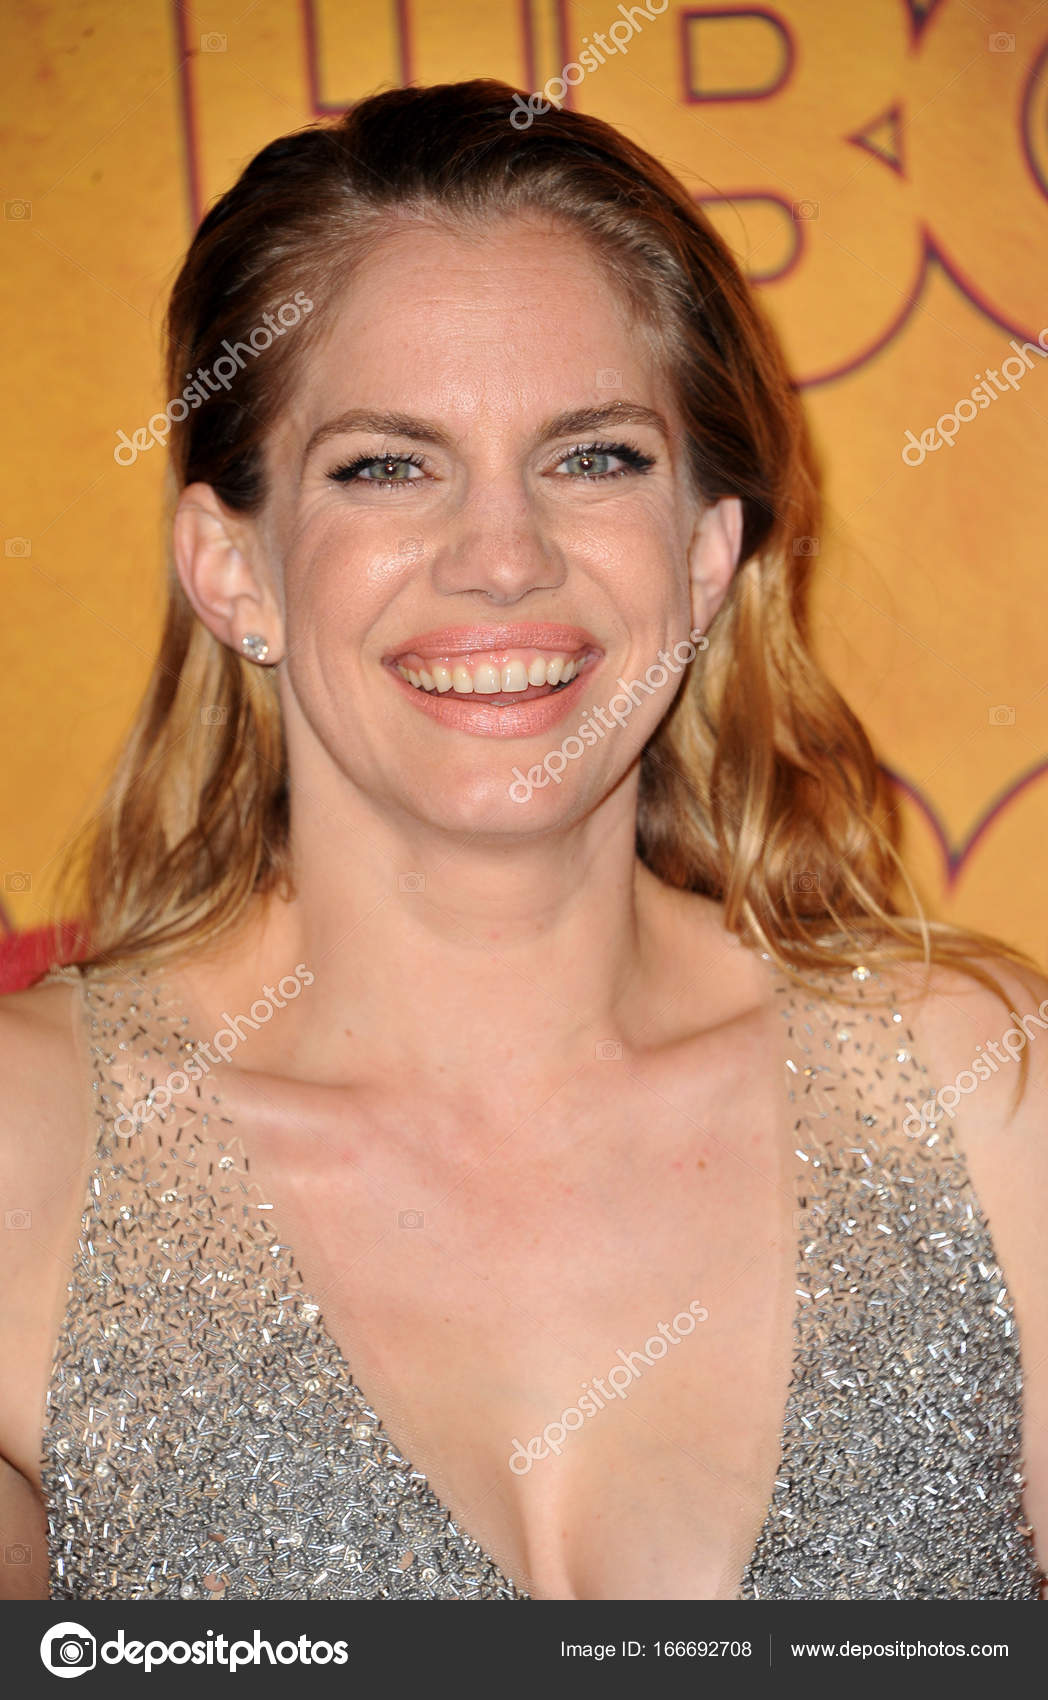 Images Anna Chlumsky nudes (88 foto and video), Pussy, Bikini, Twitter, swimsuit 2015